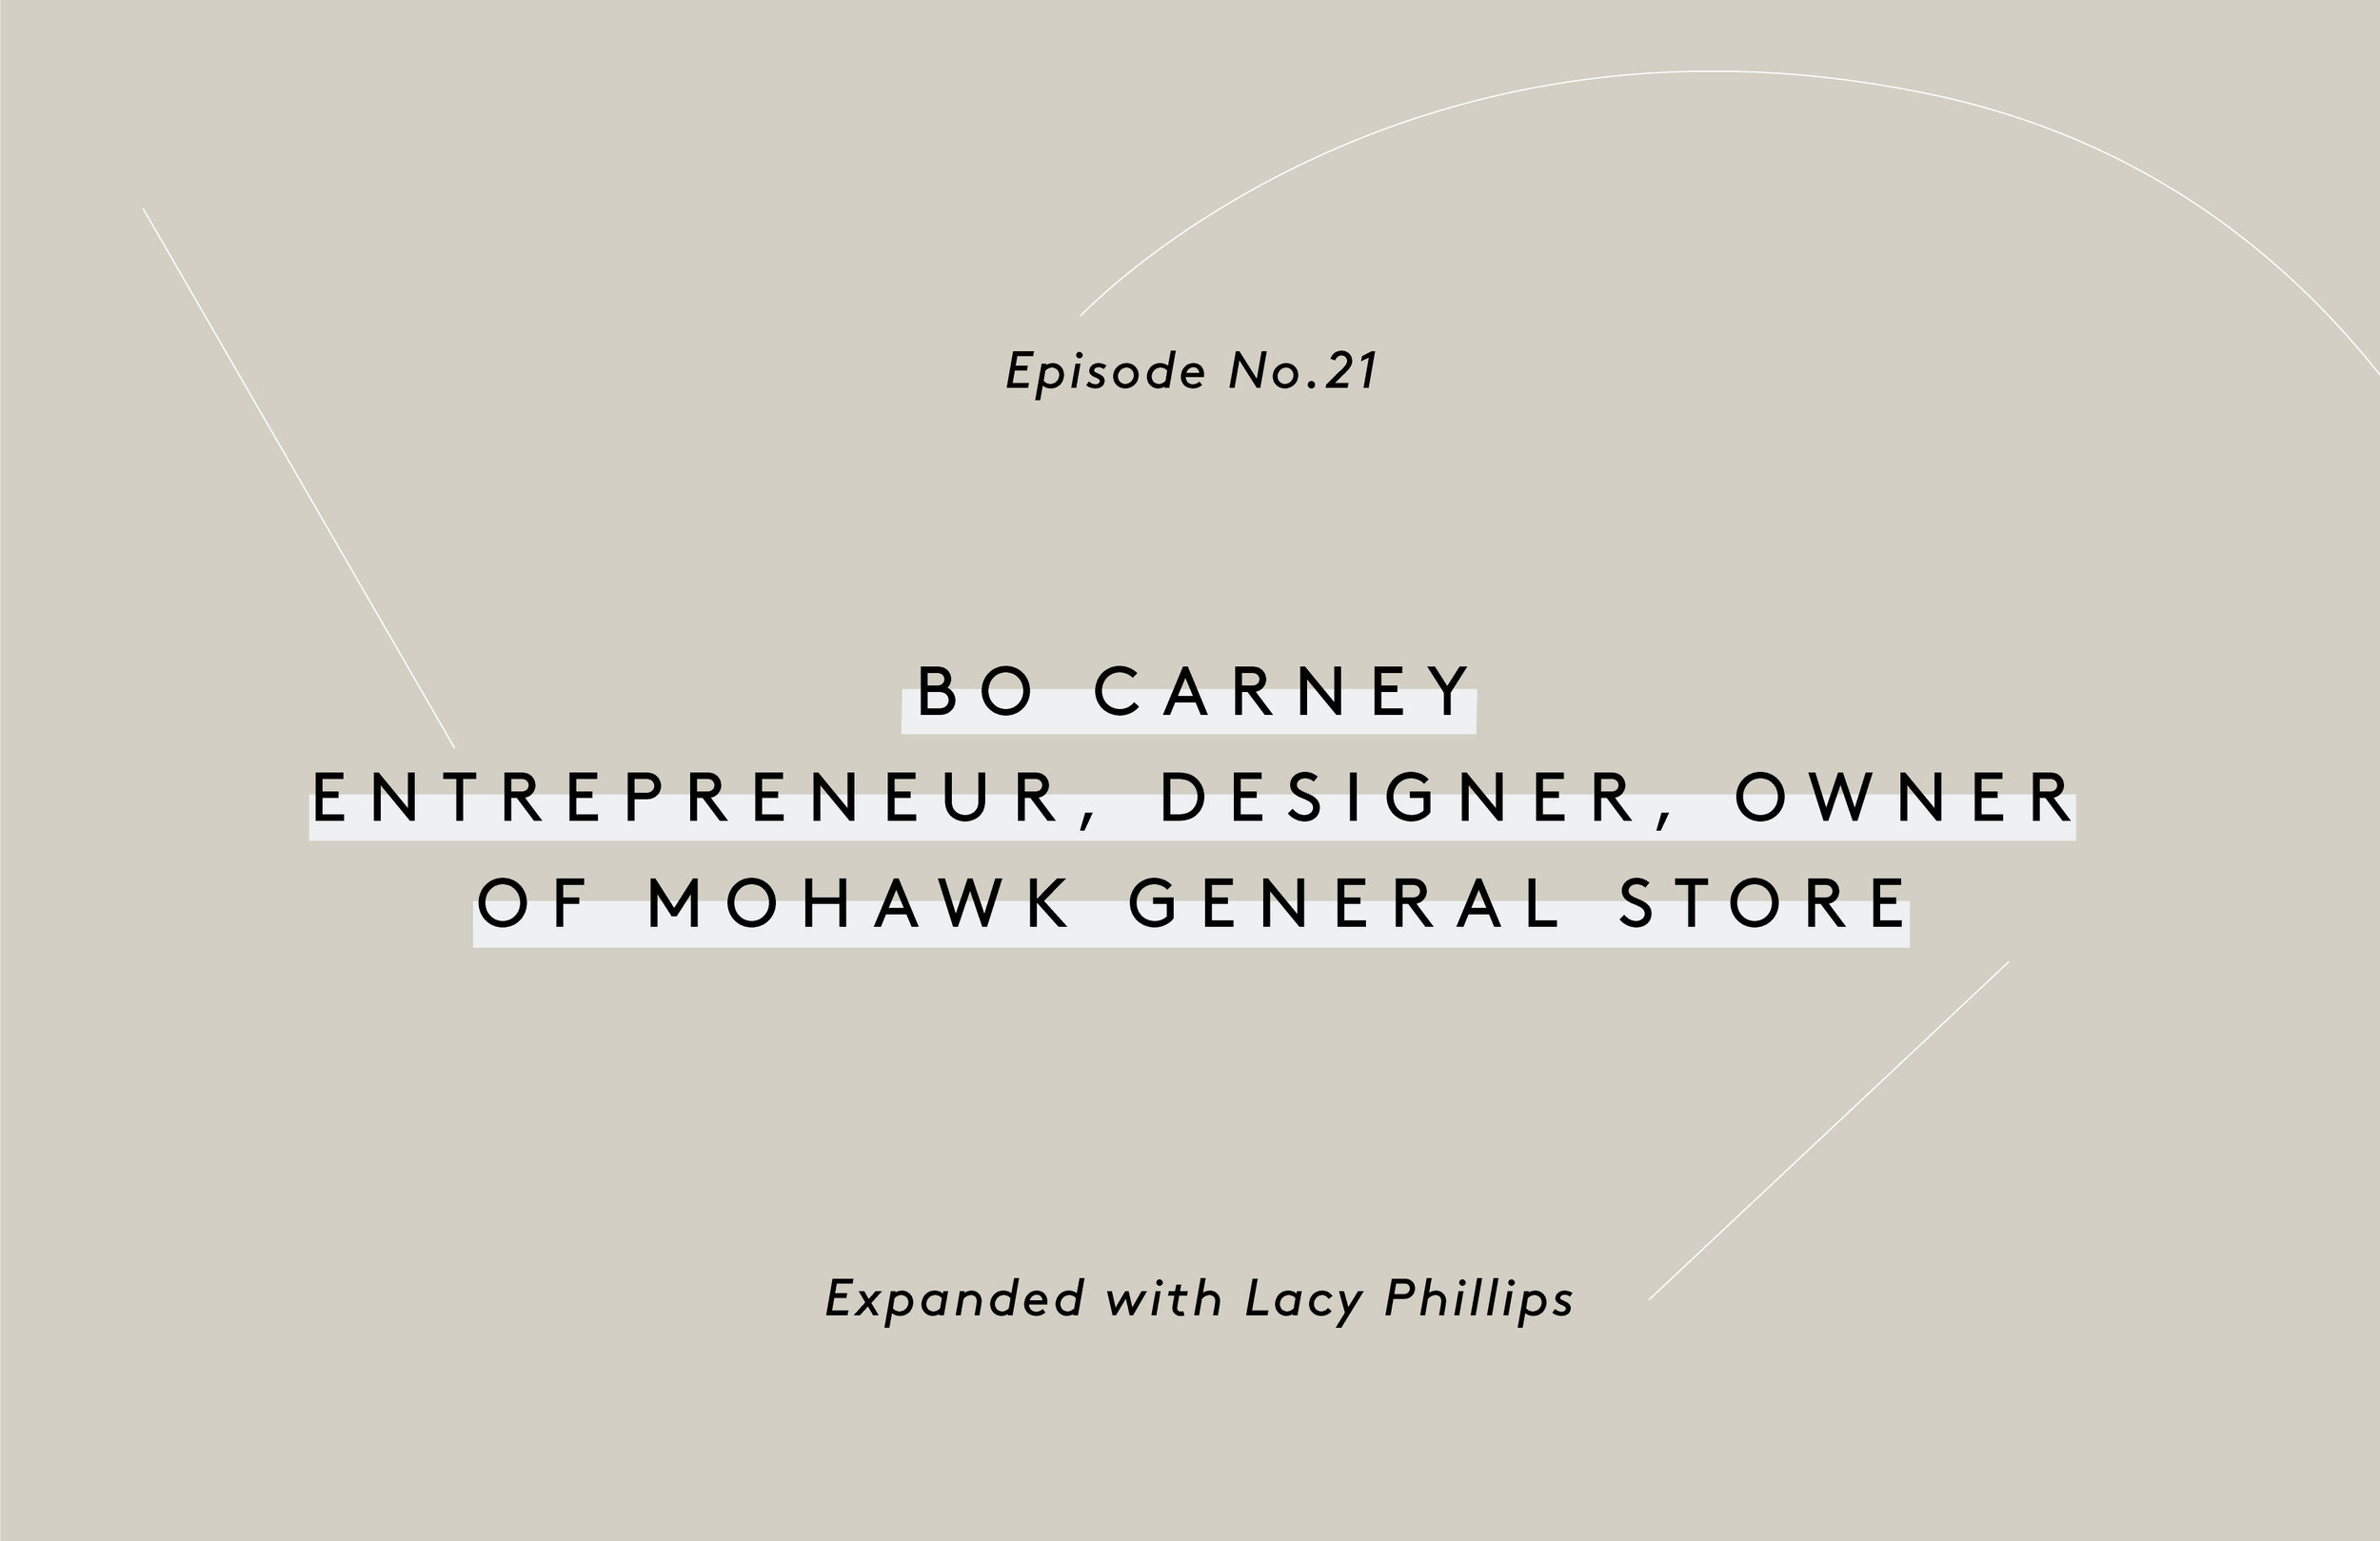 Bo Carney the Founder of Mohawk General Store